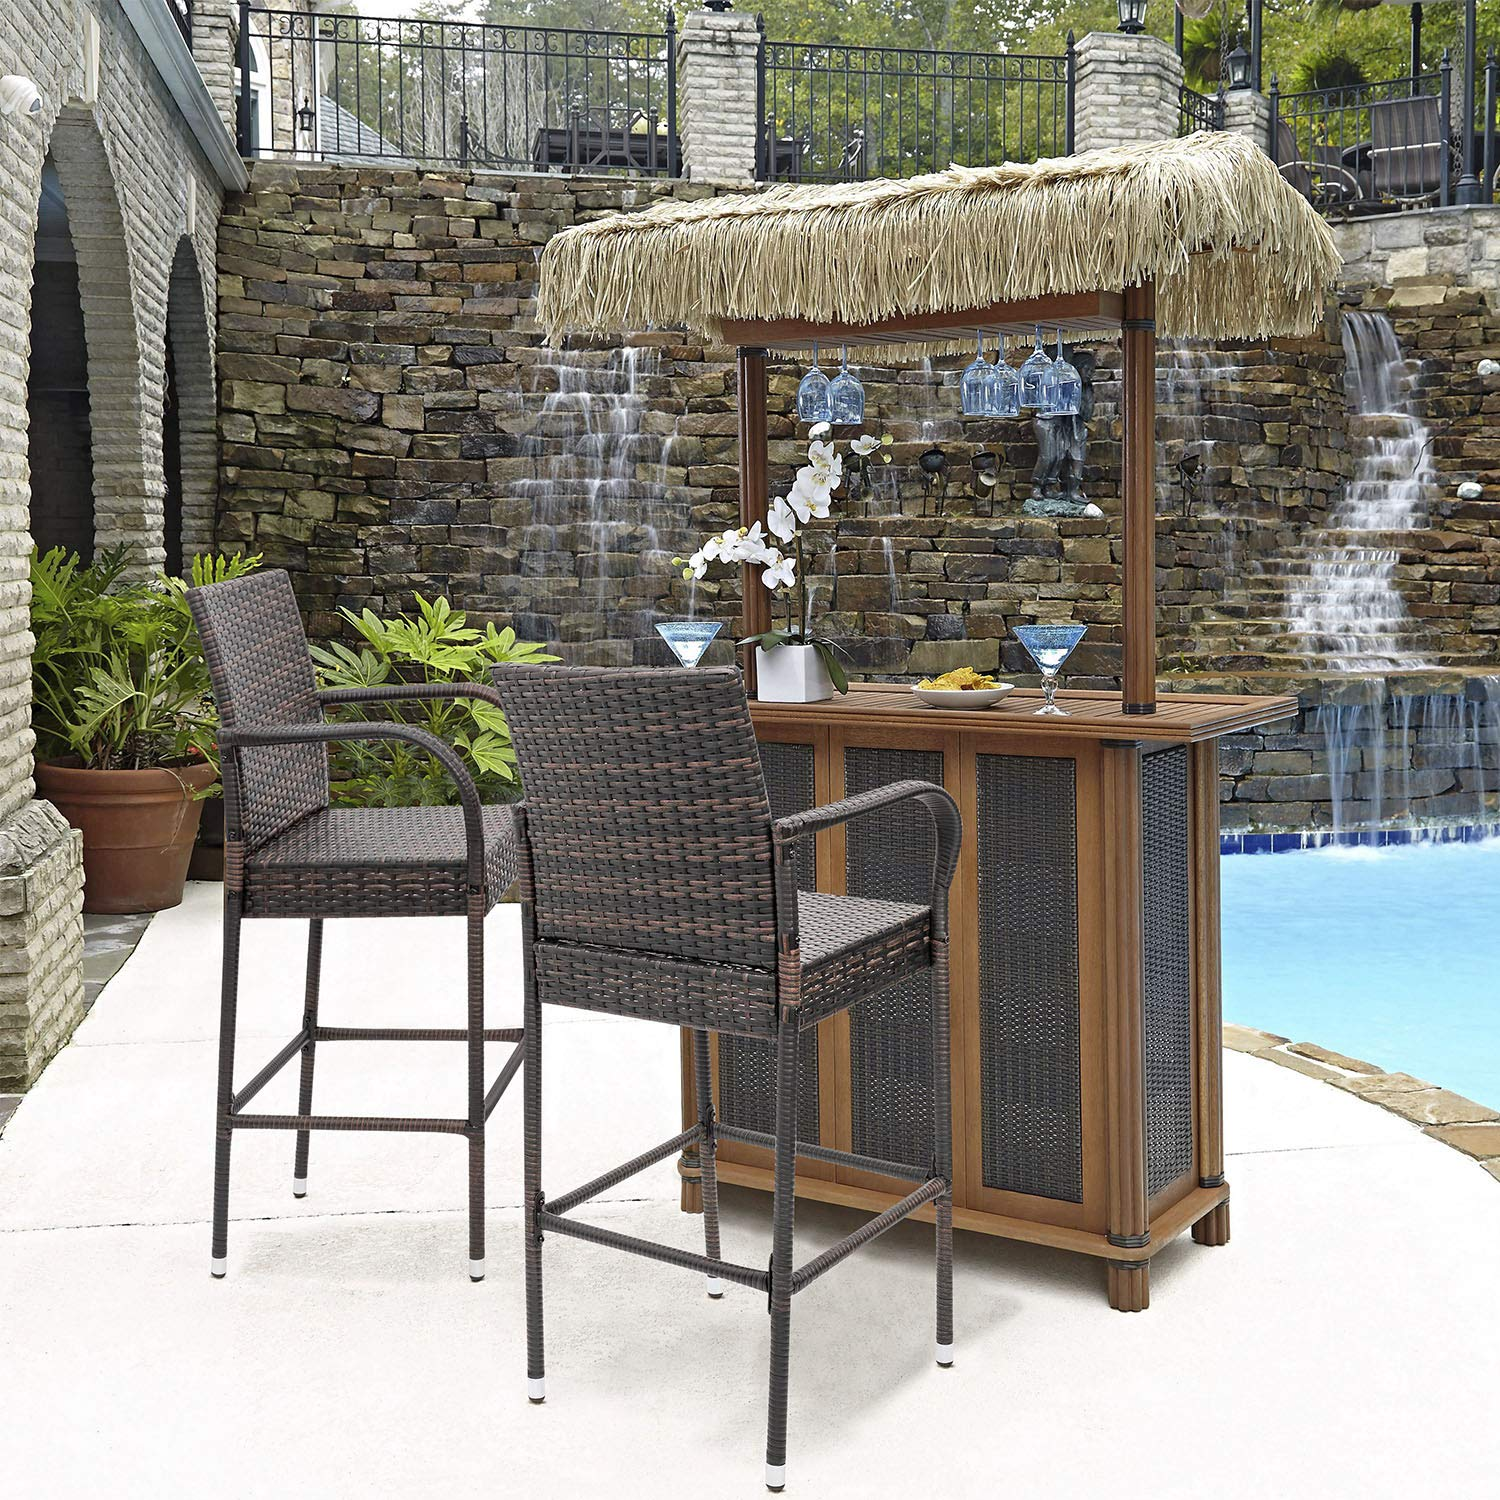 Homall Patio Bar Stools Wicker Barstools Indoor Outdoor Bar Stool Patio Furniture with Footrest and Armrest for Garden Pool Lawn Backyard Set of 2 (Brown) by Homall (Image #5)